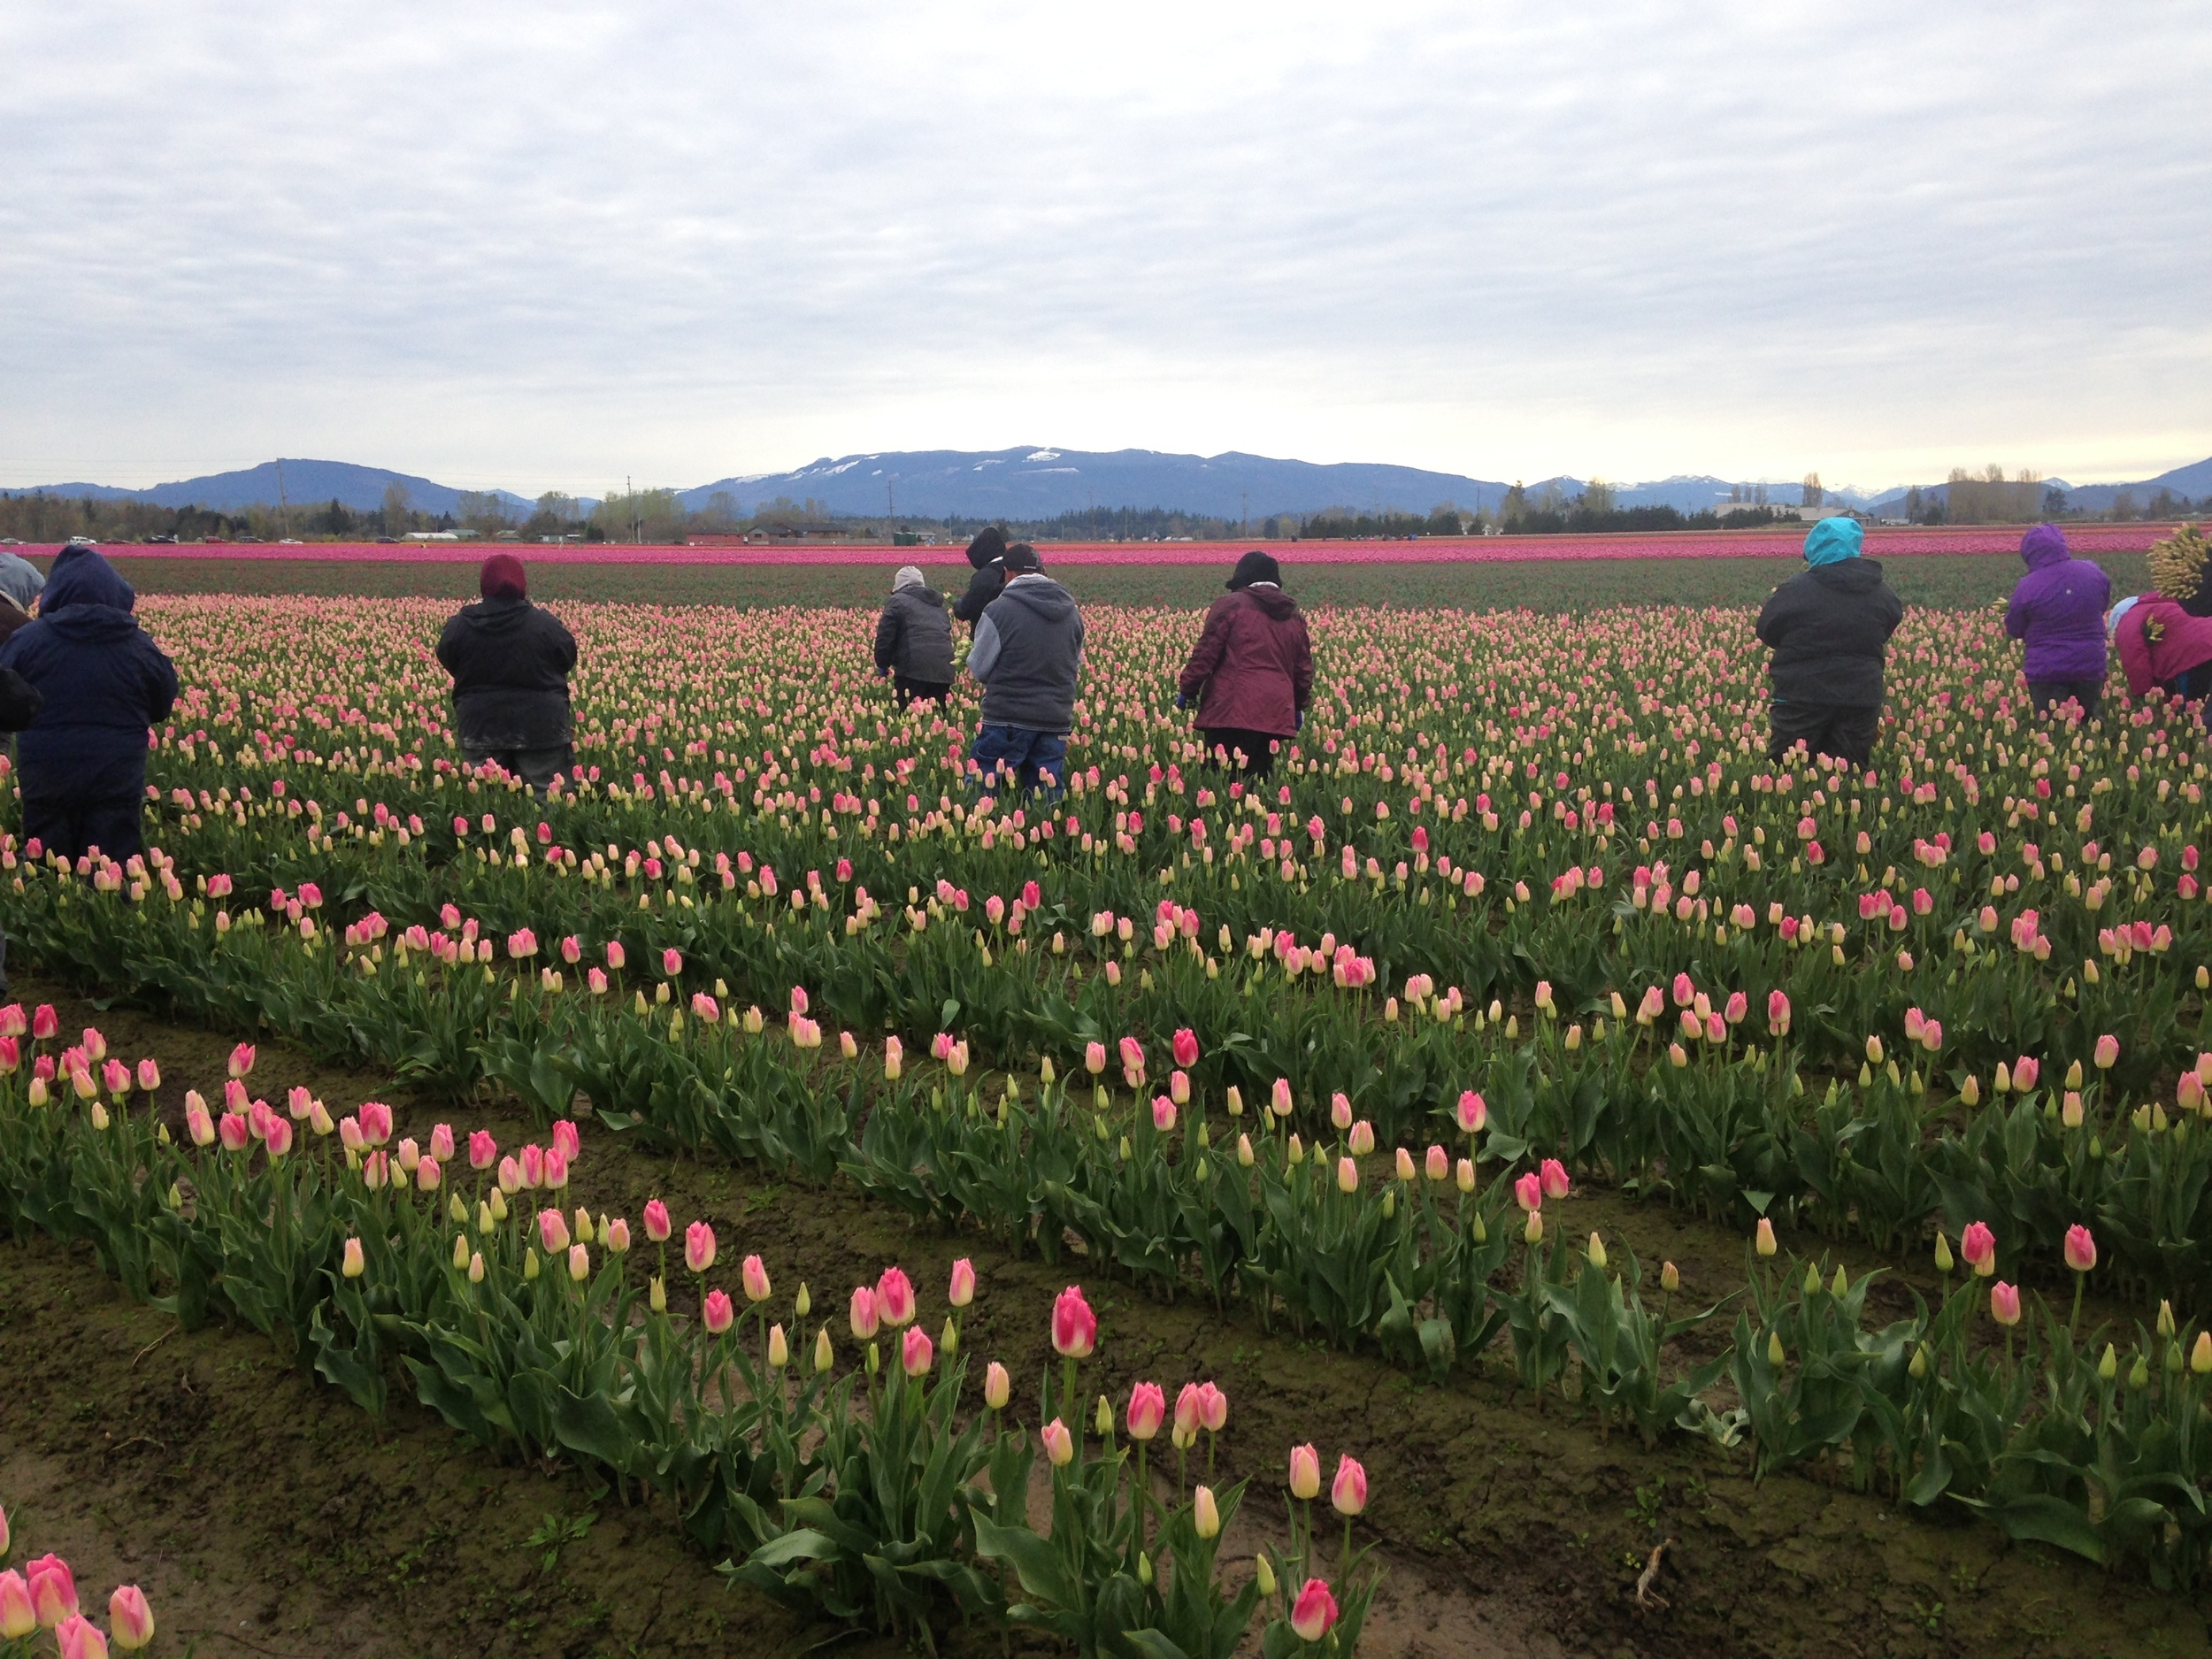 In unison, the workers advance, slowly, rhythmically. Reaching over, gently snipping the bottoms of the tulip stems.